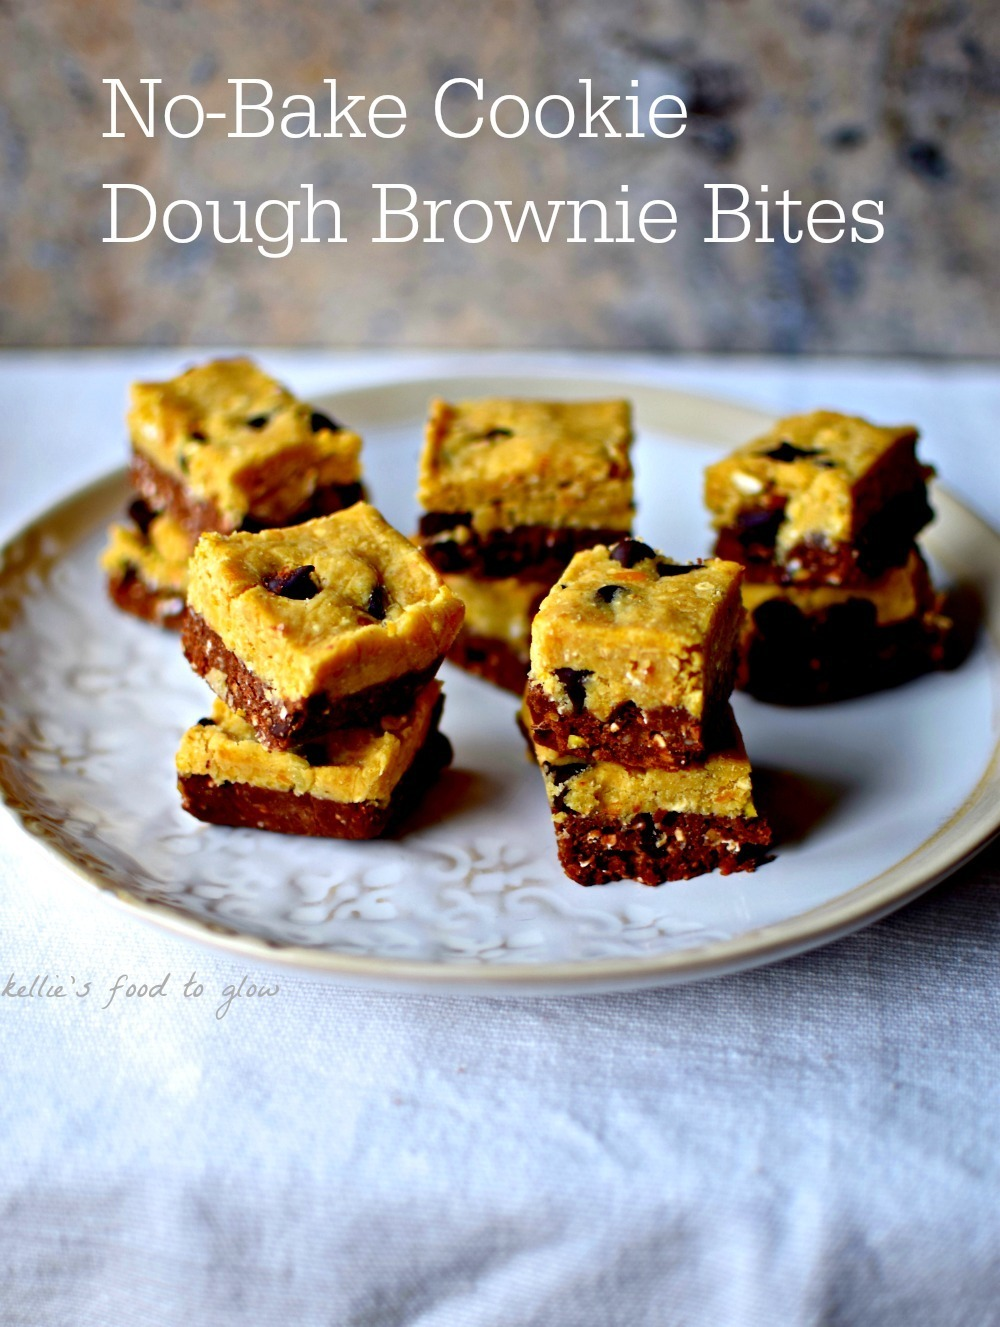 No-Bake Cookie Dough Brownie Bites Recipe